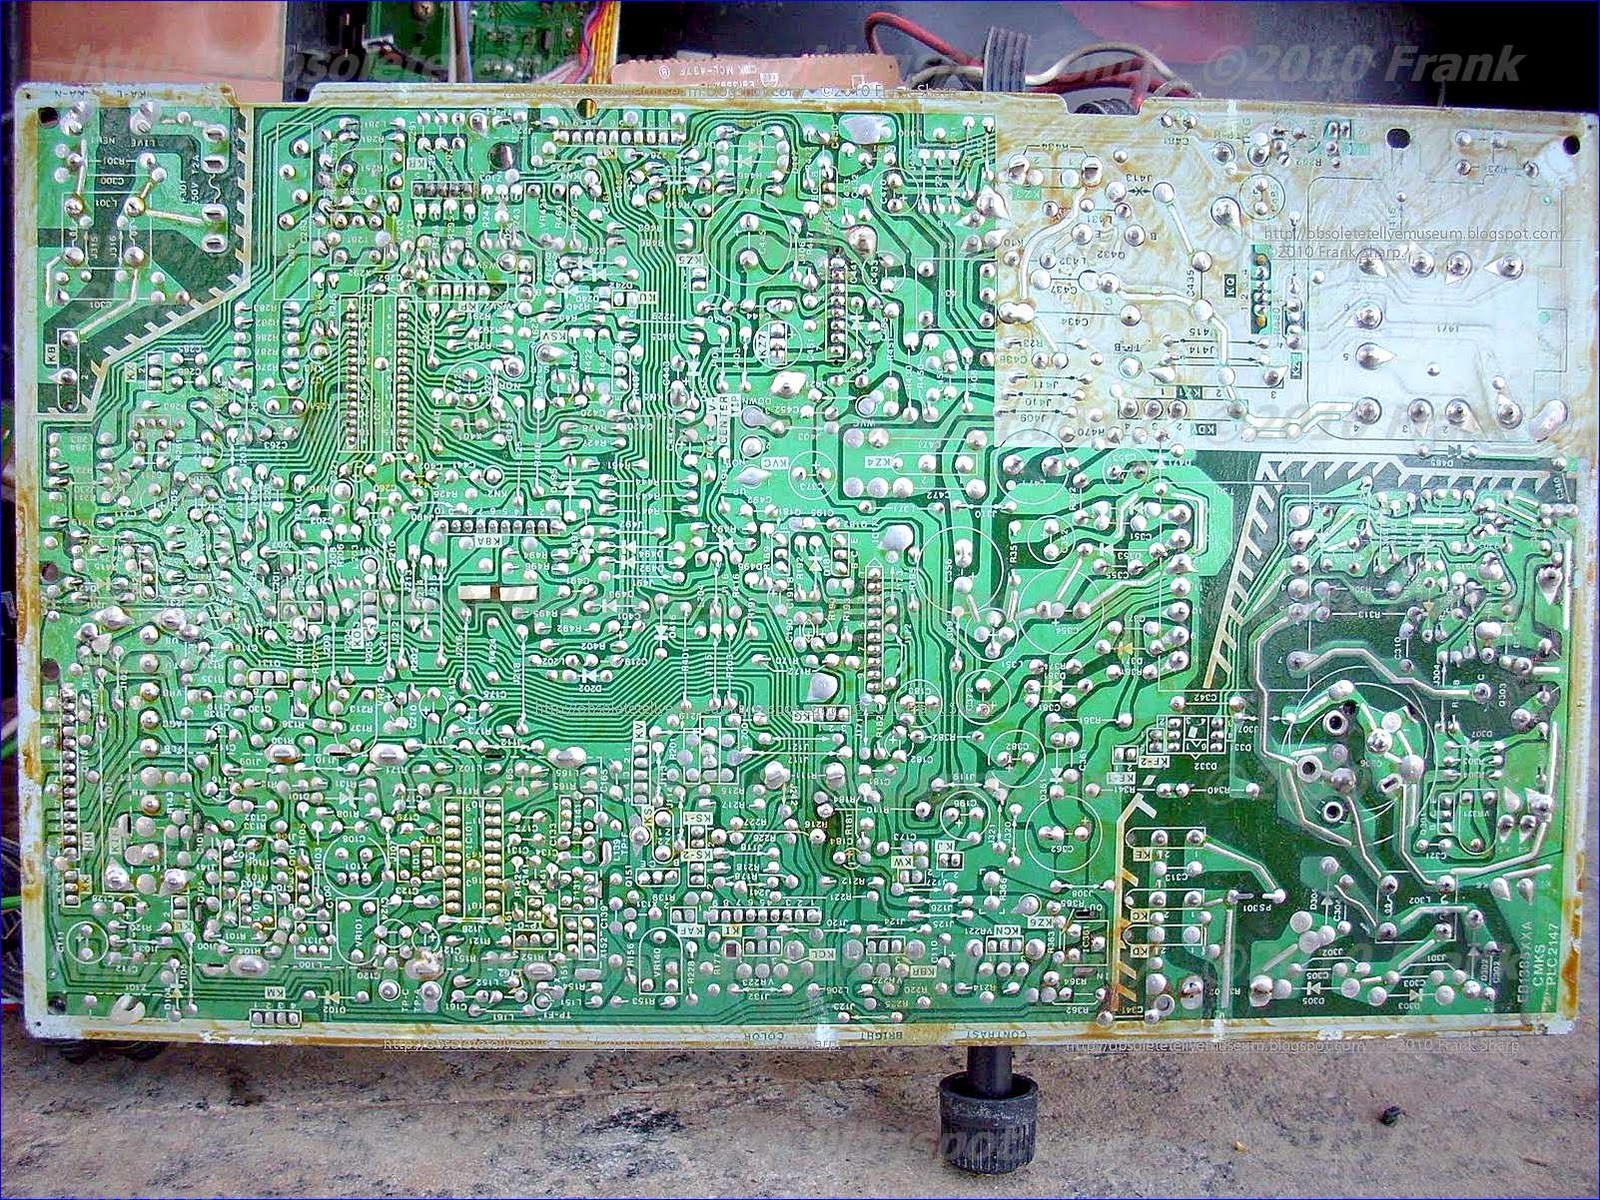 obsolete technology tellye siemens electrogerate gmbh typ fc703 pcb chassis view. Black Bedroom Furniture Sets. Home Design Ideas